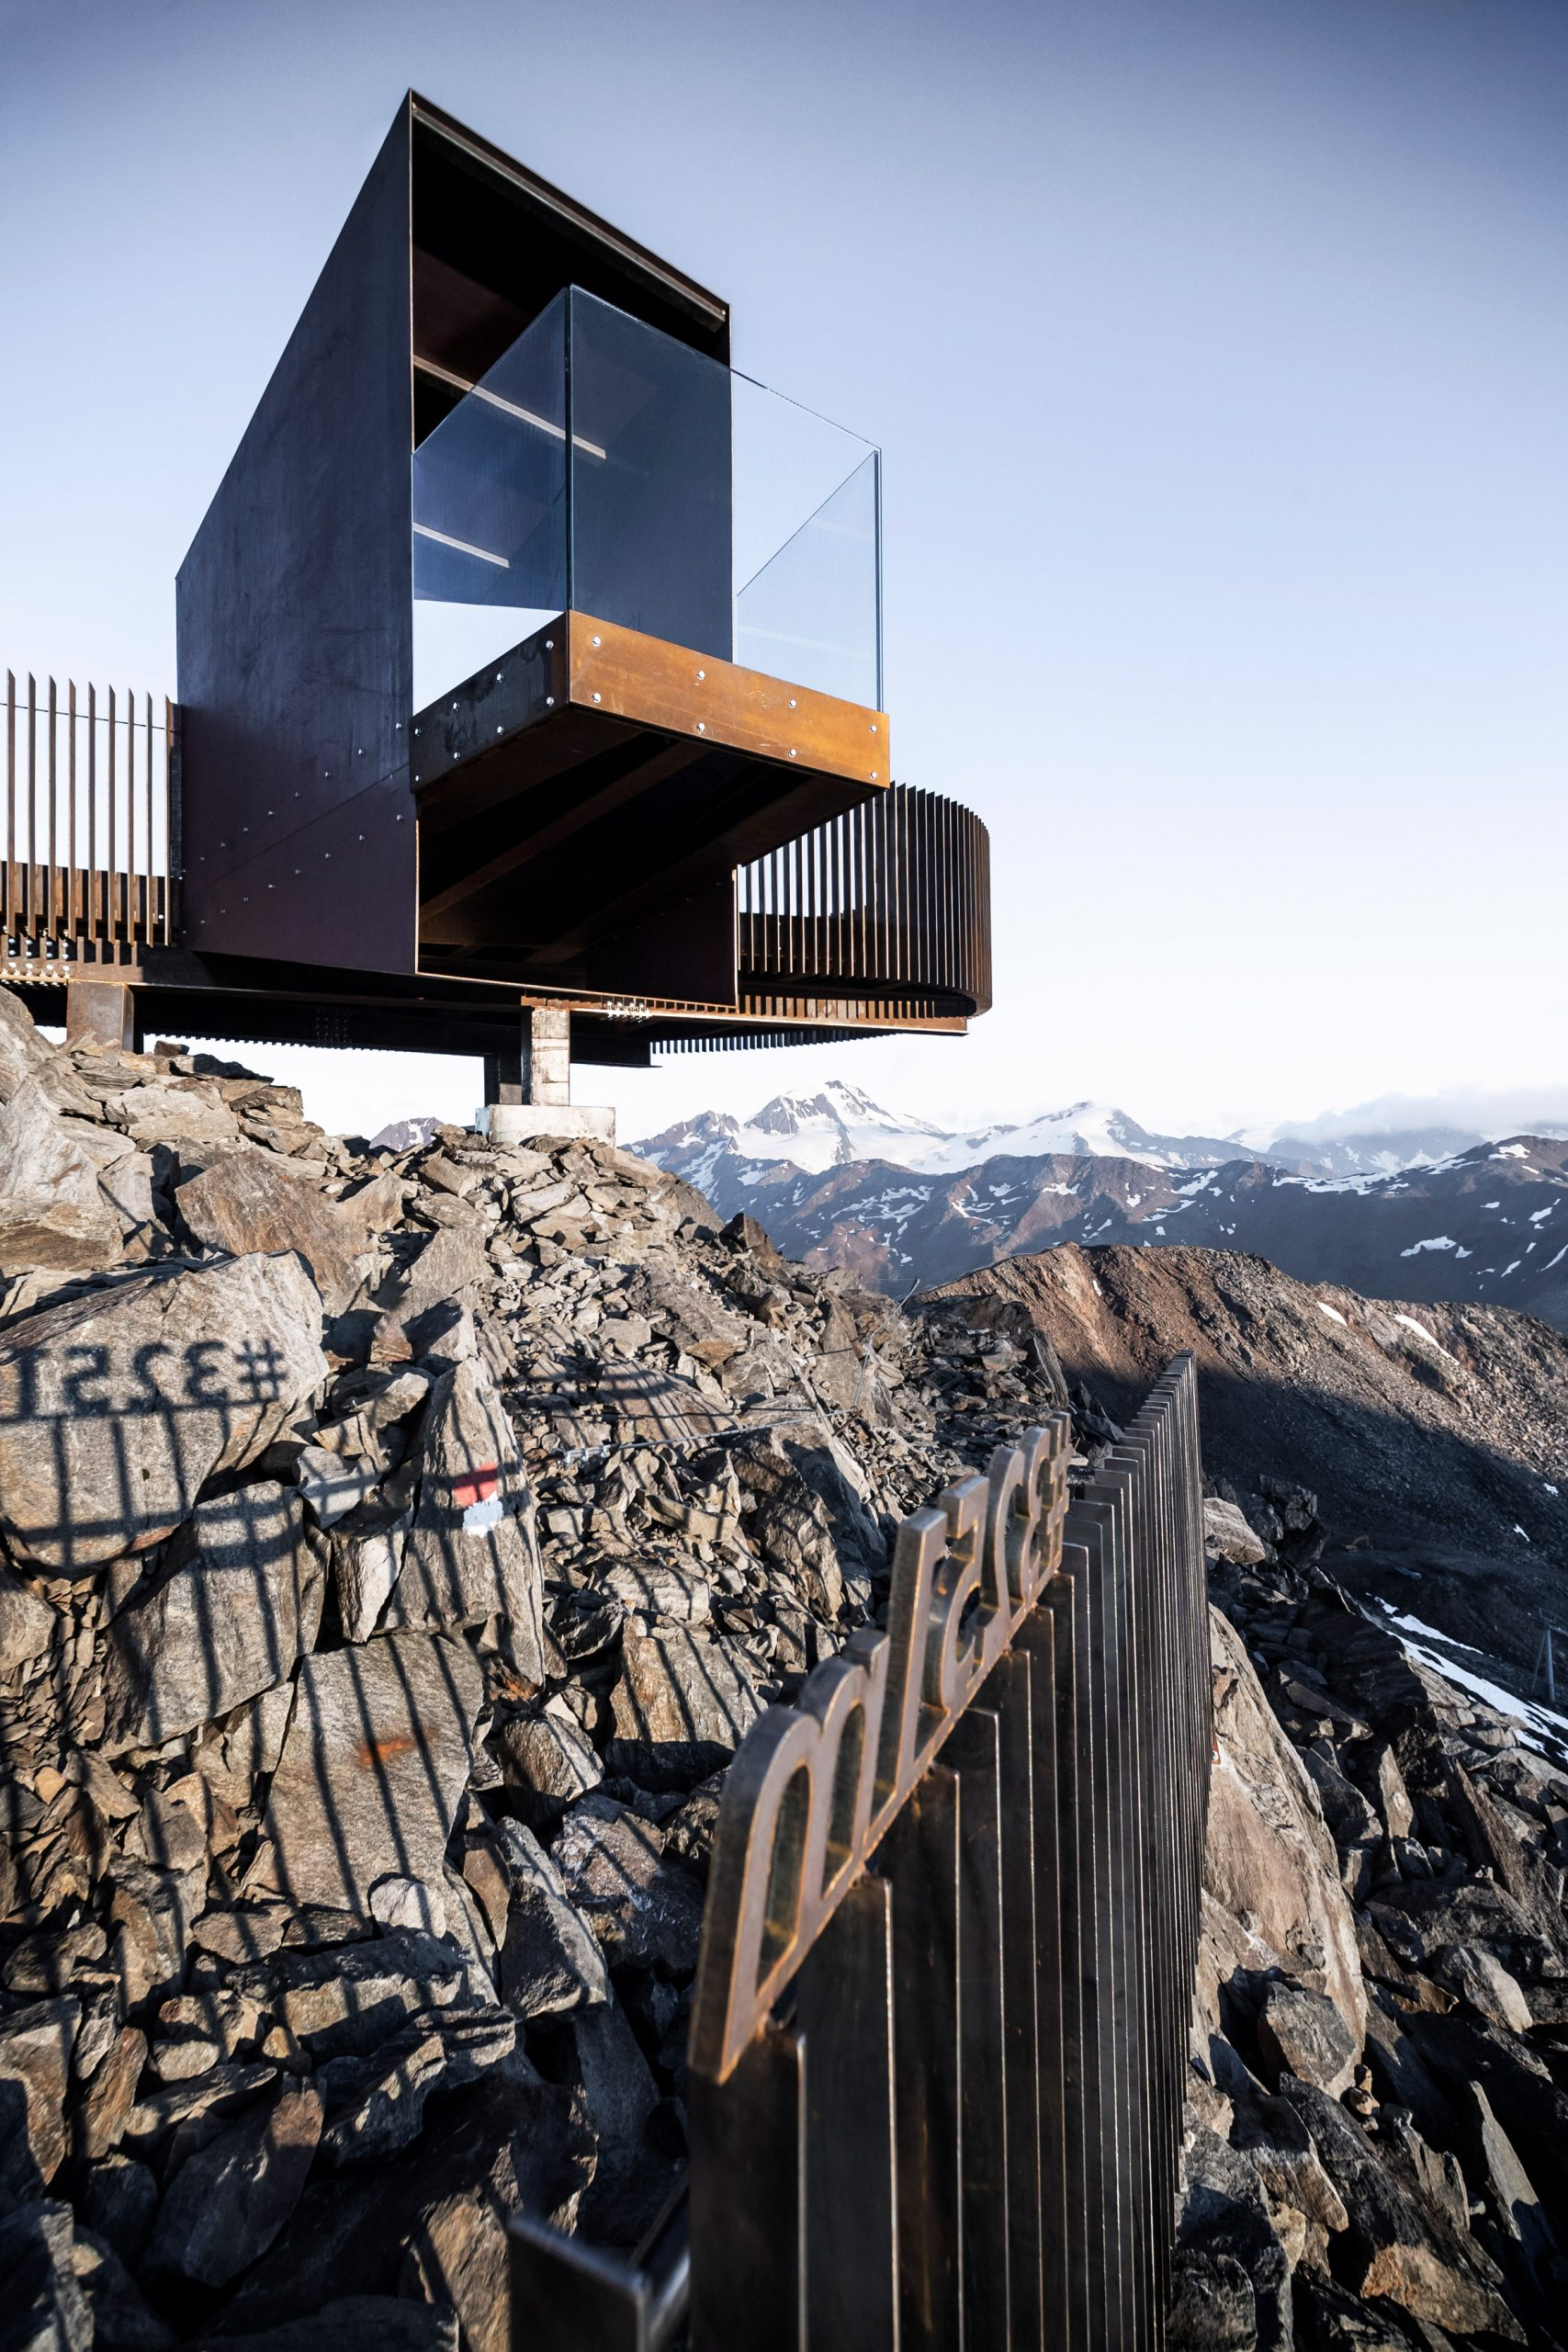 Viewing platform made of weathering steel and glass projects over Italian Alps